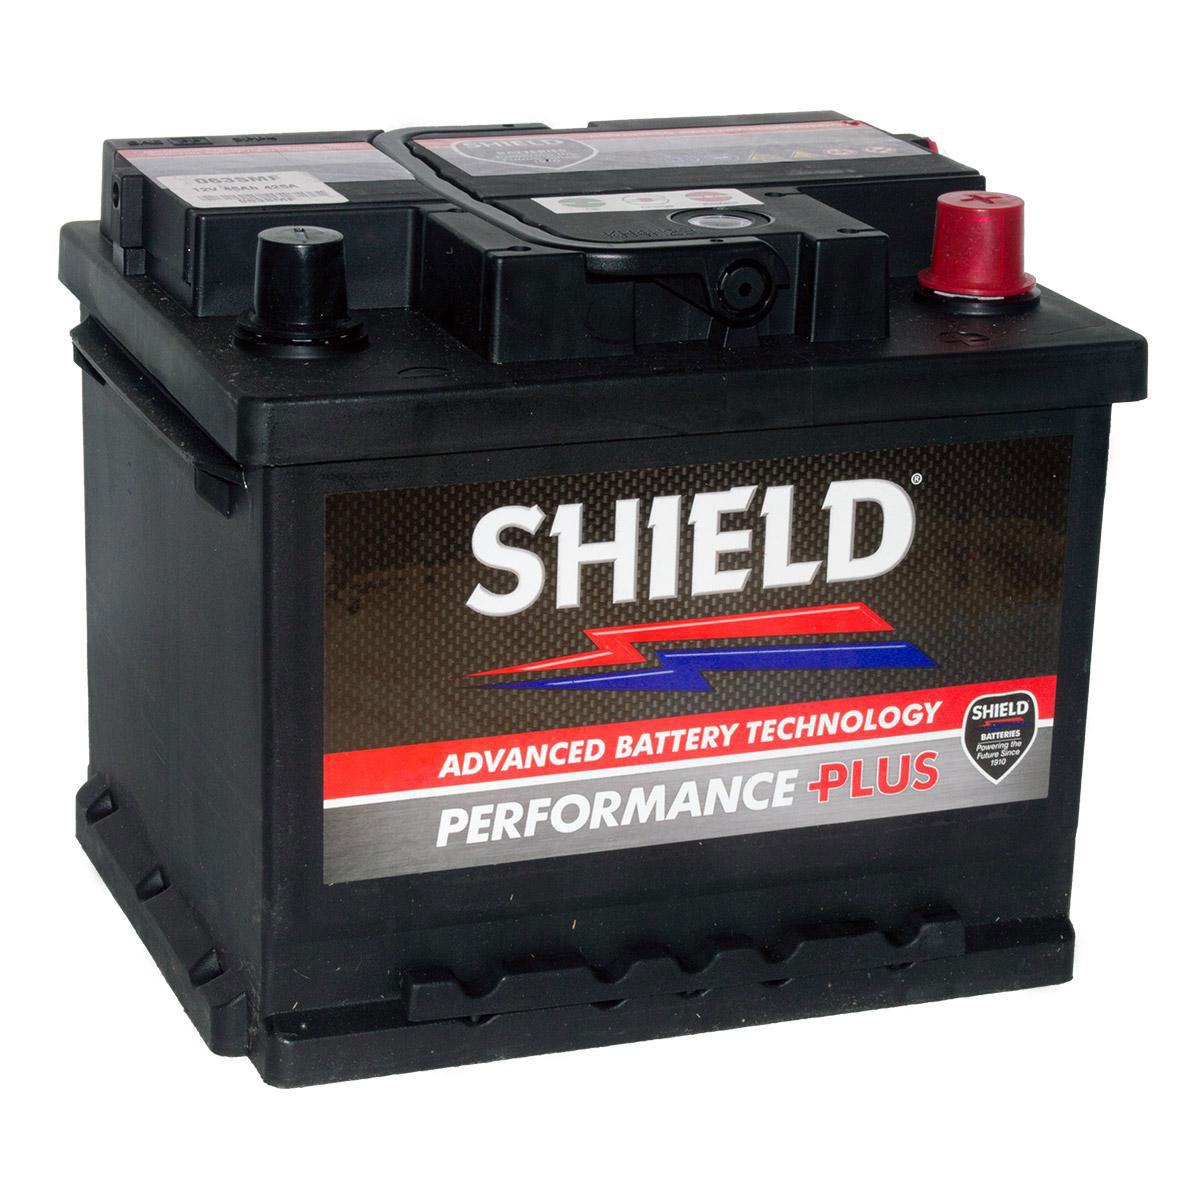 Shield-063SMF-Battery.jpg